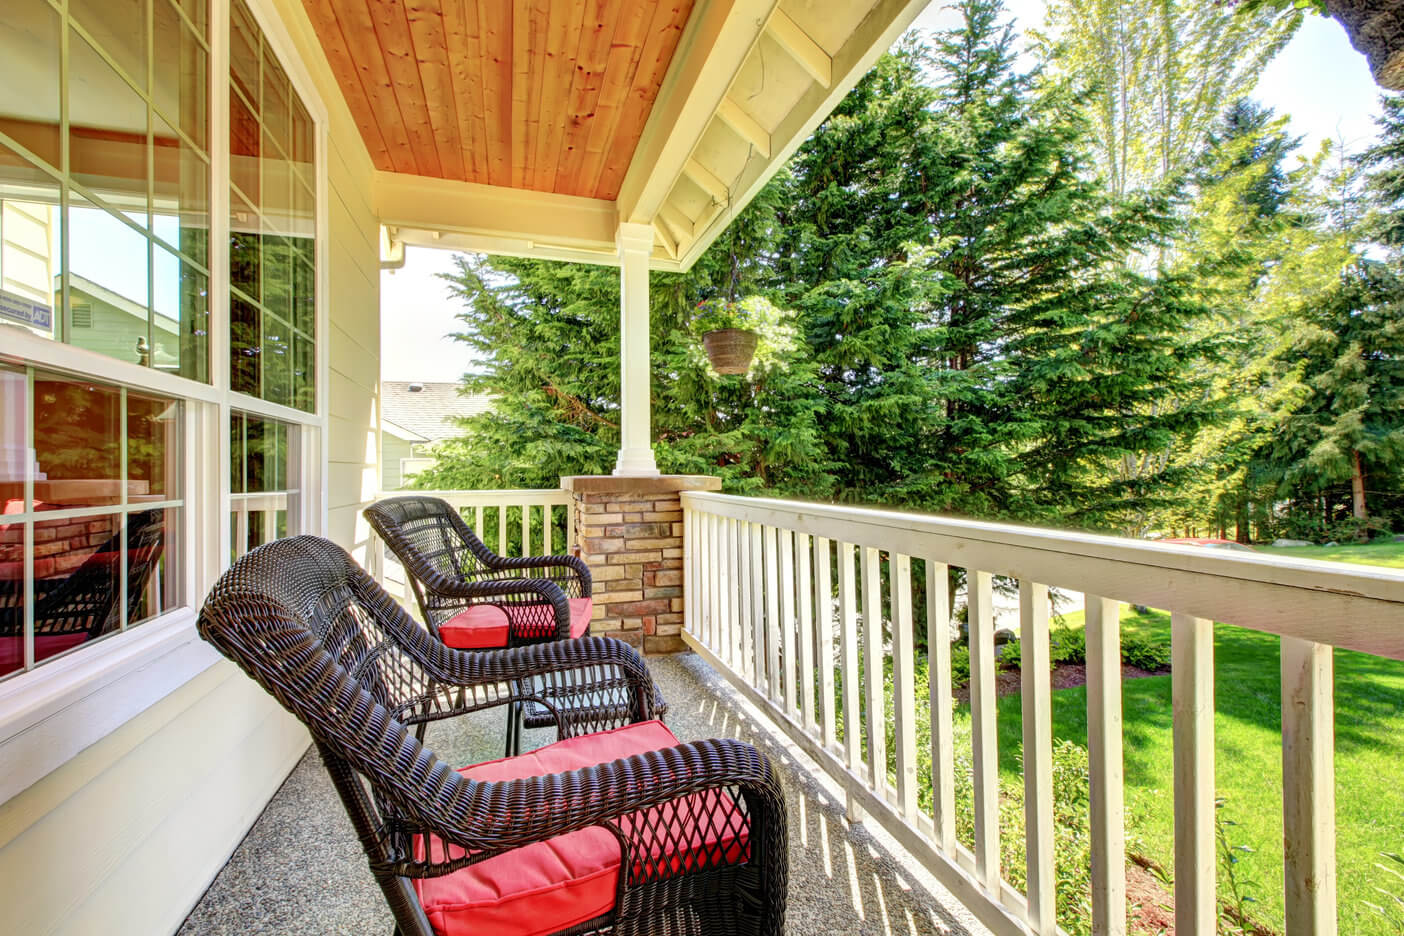 porch with chair